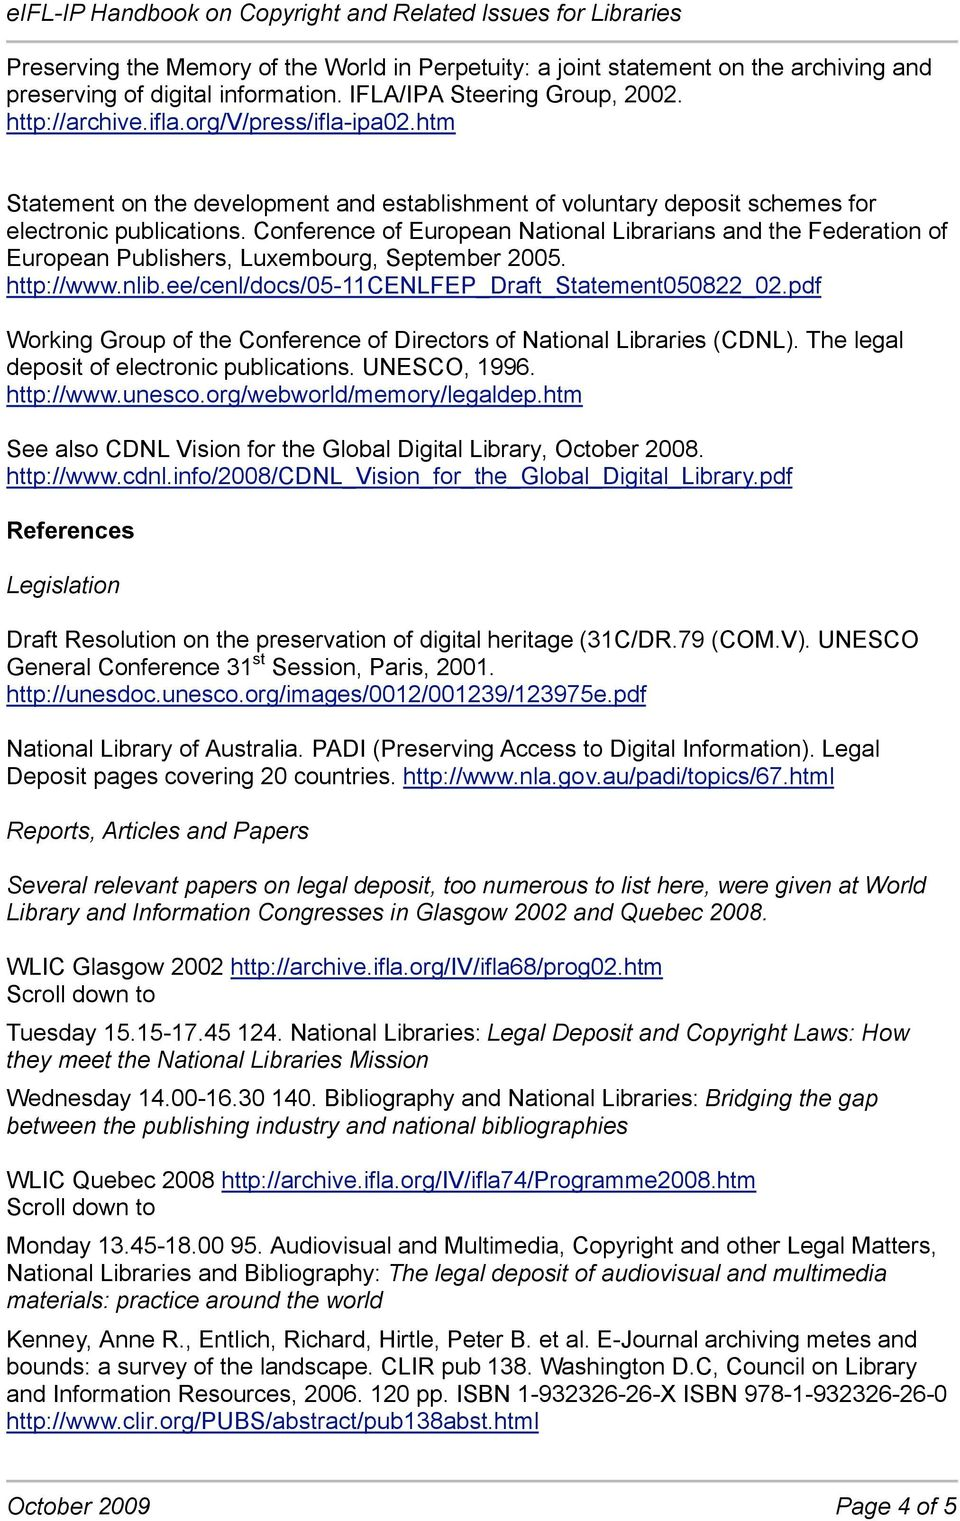 Conference of European National Librarians and the Federation of European Publishers, Luxembourg, September 2005. http://www.nlib.ee/cenl/docs/05-11cenlfep_draft_statement050822_02.